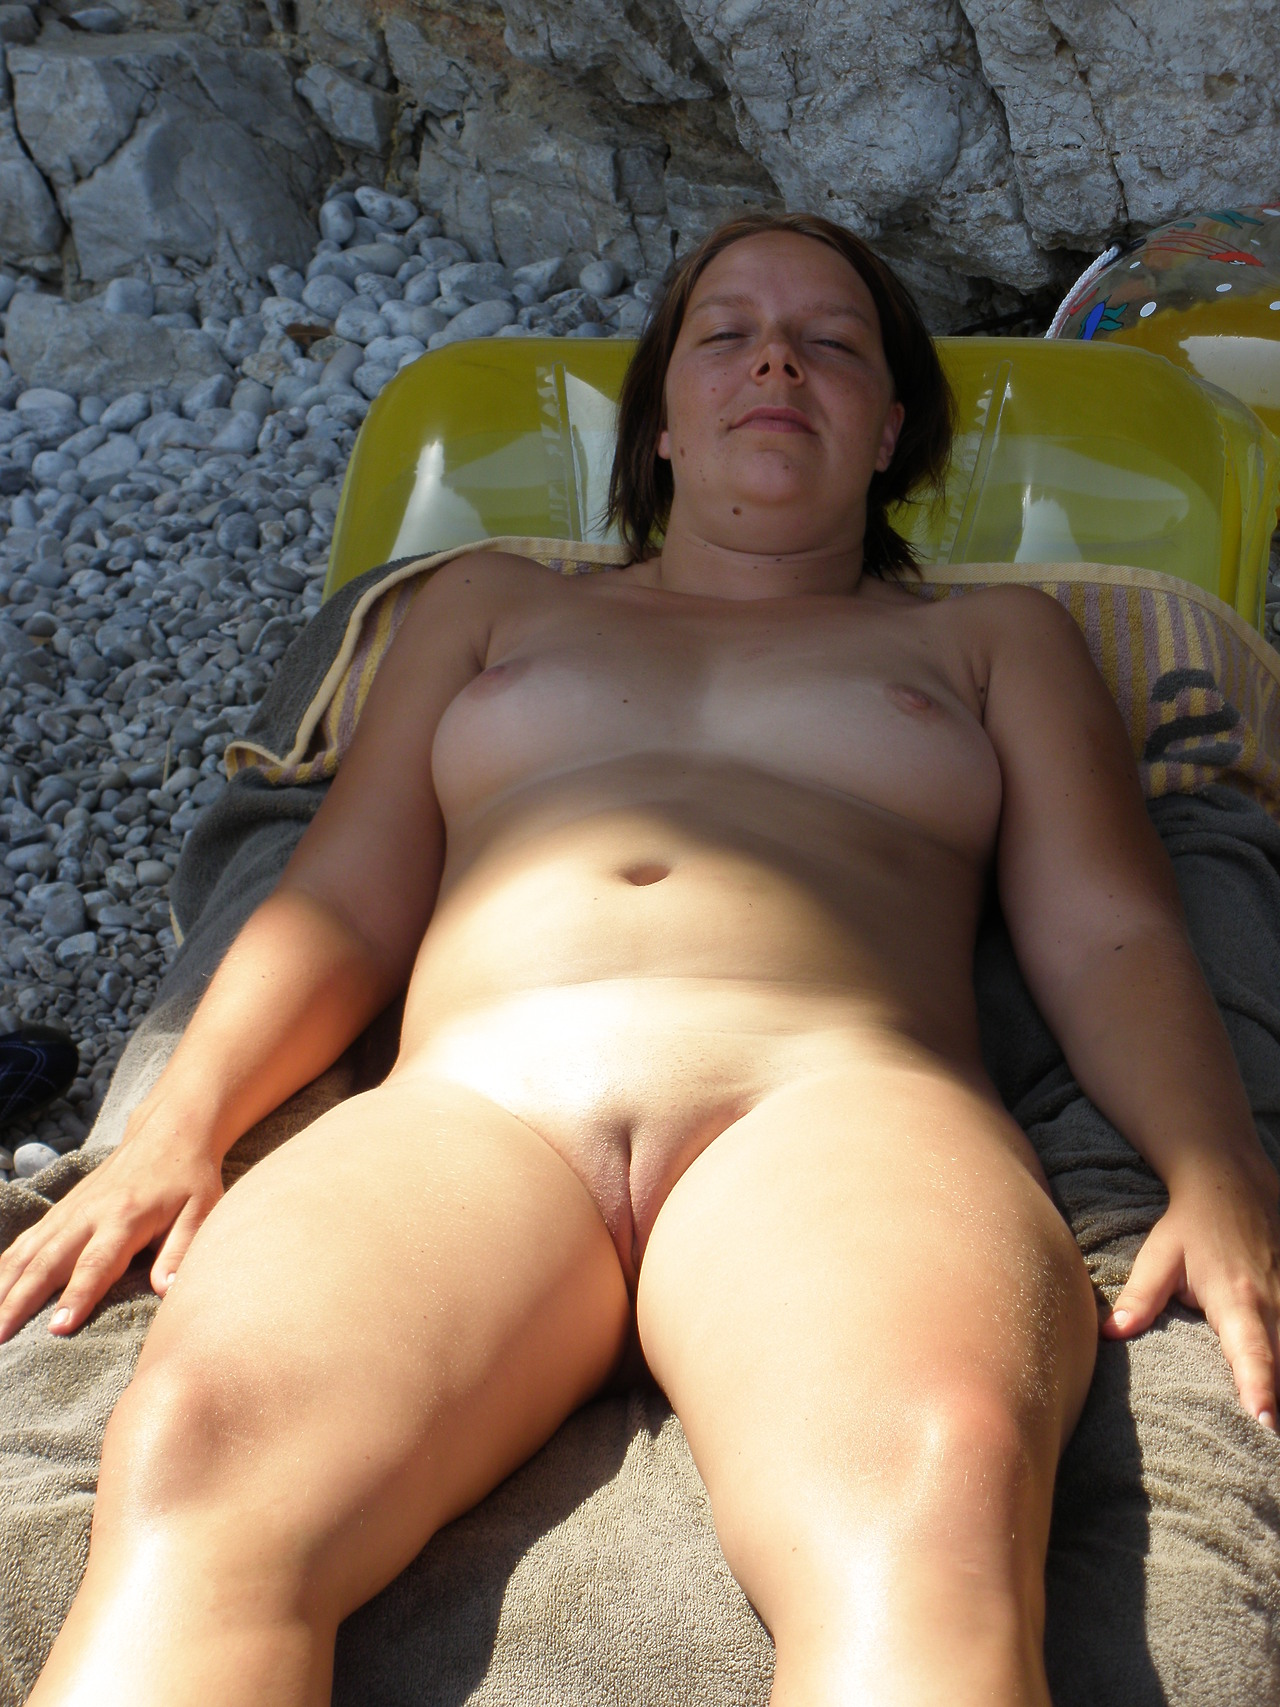 You have Plain jane nude chick not torture